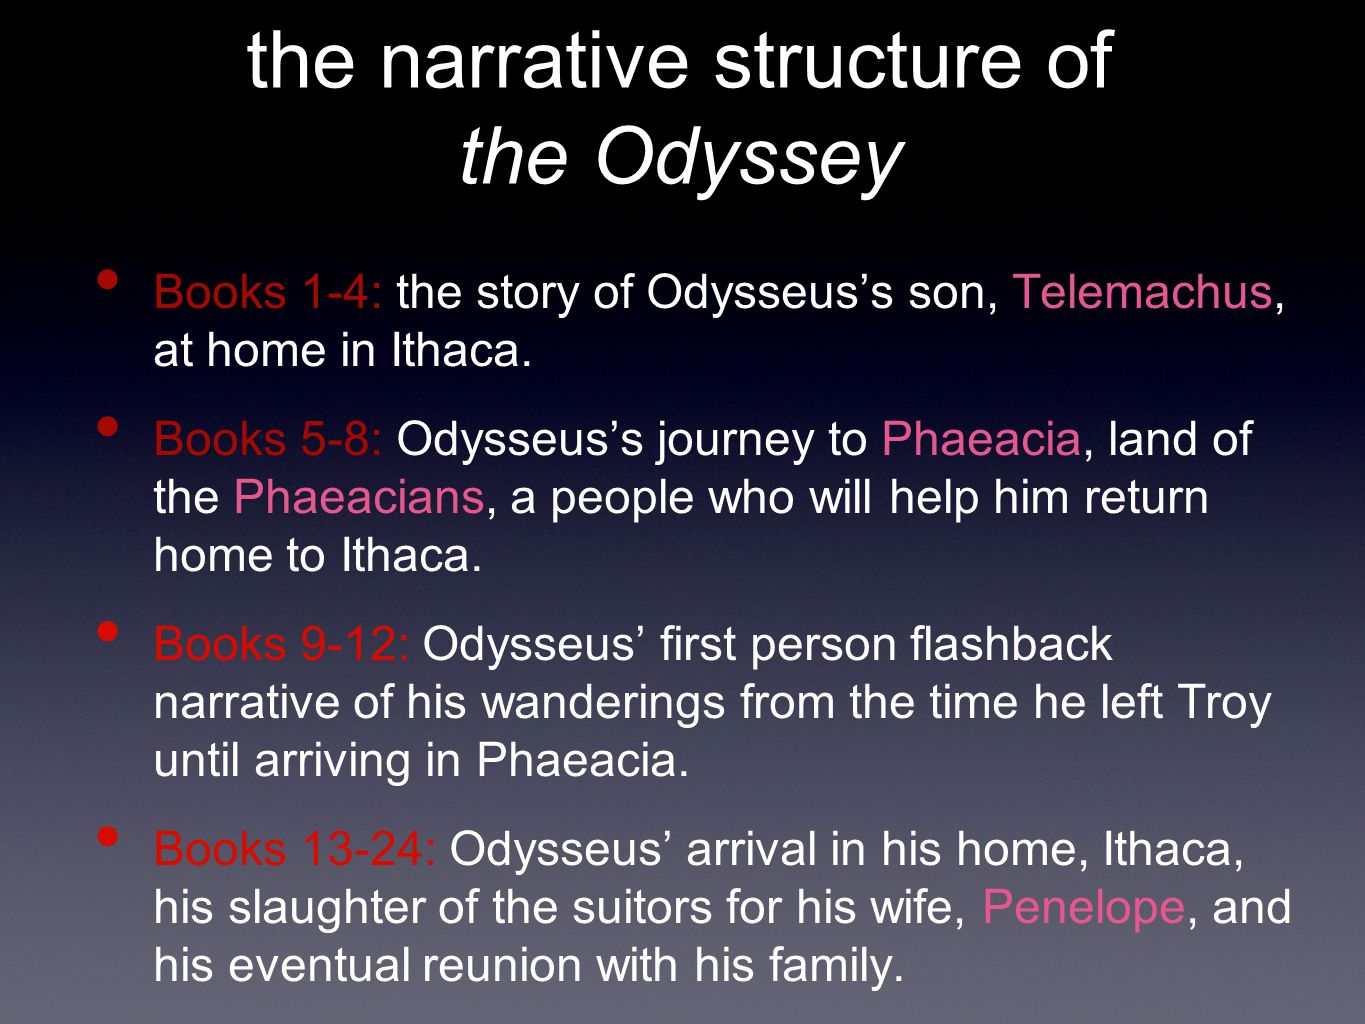 the narrative structure of the Odyssey Books 1-4: the story of Odysseus's son, Telemachus, at home in Ithaca.